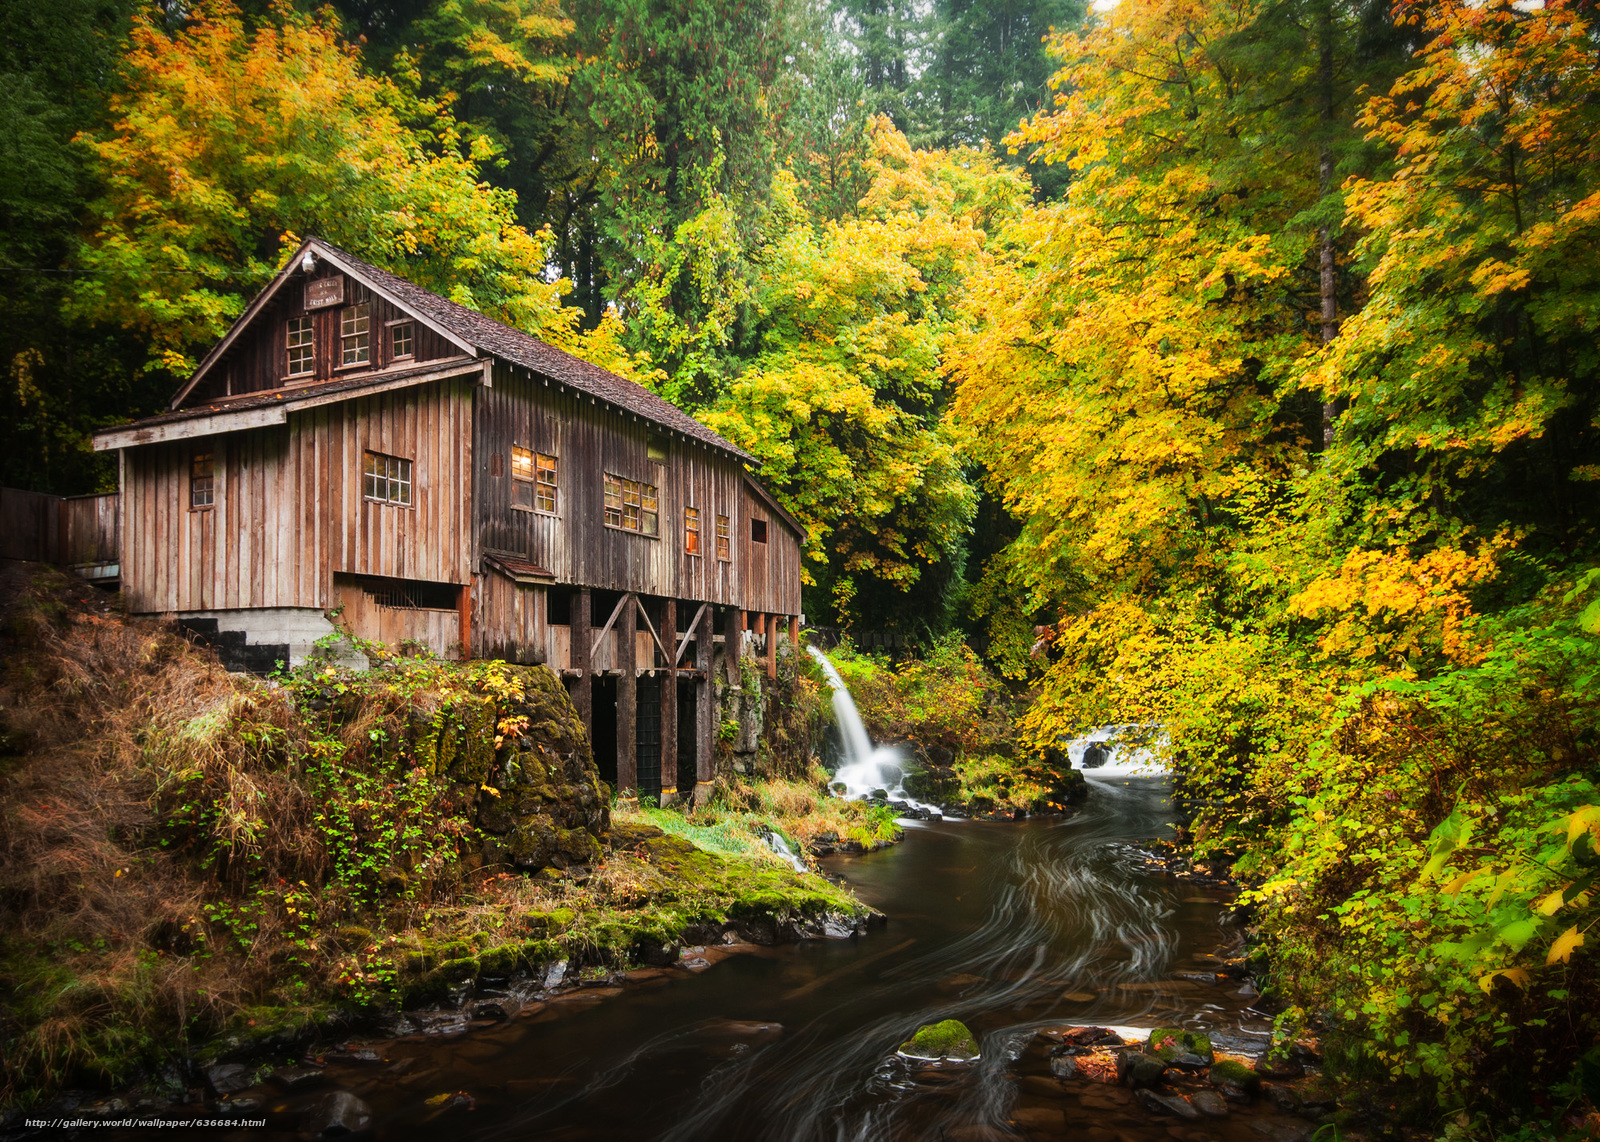 Download wallpaper cedar creek grist mill woodland for The cedar mill